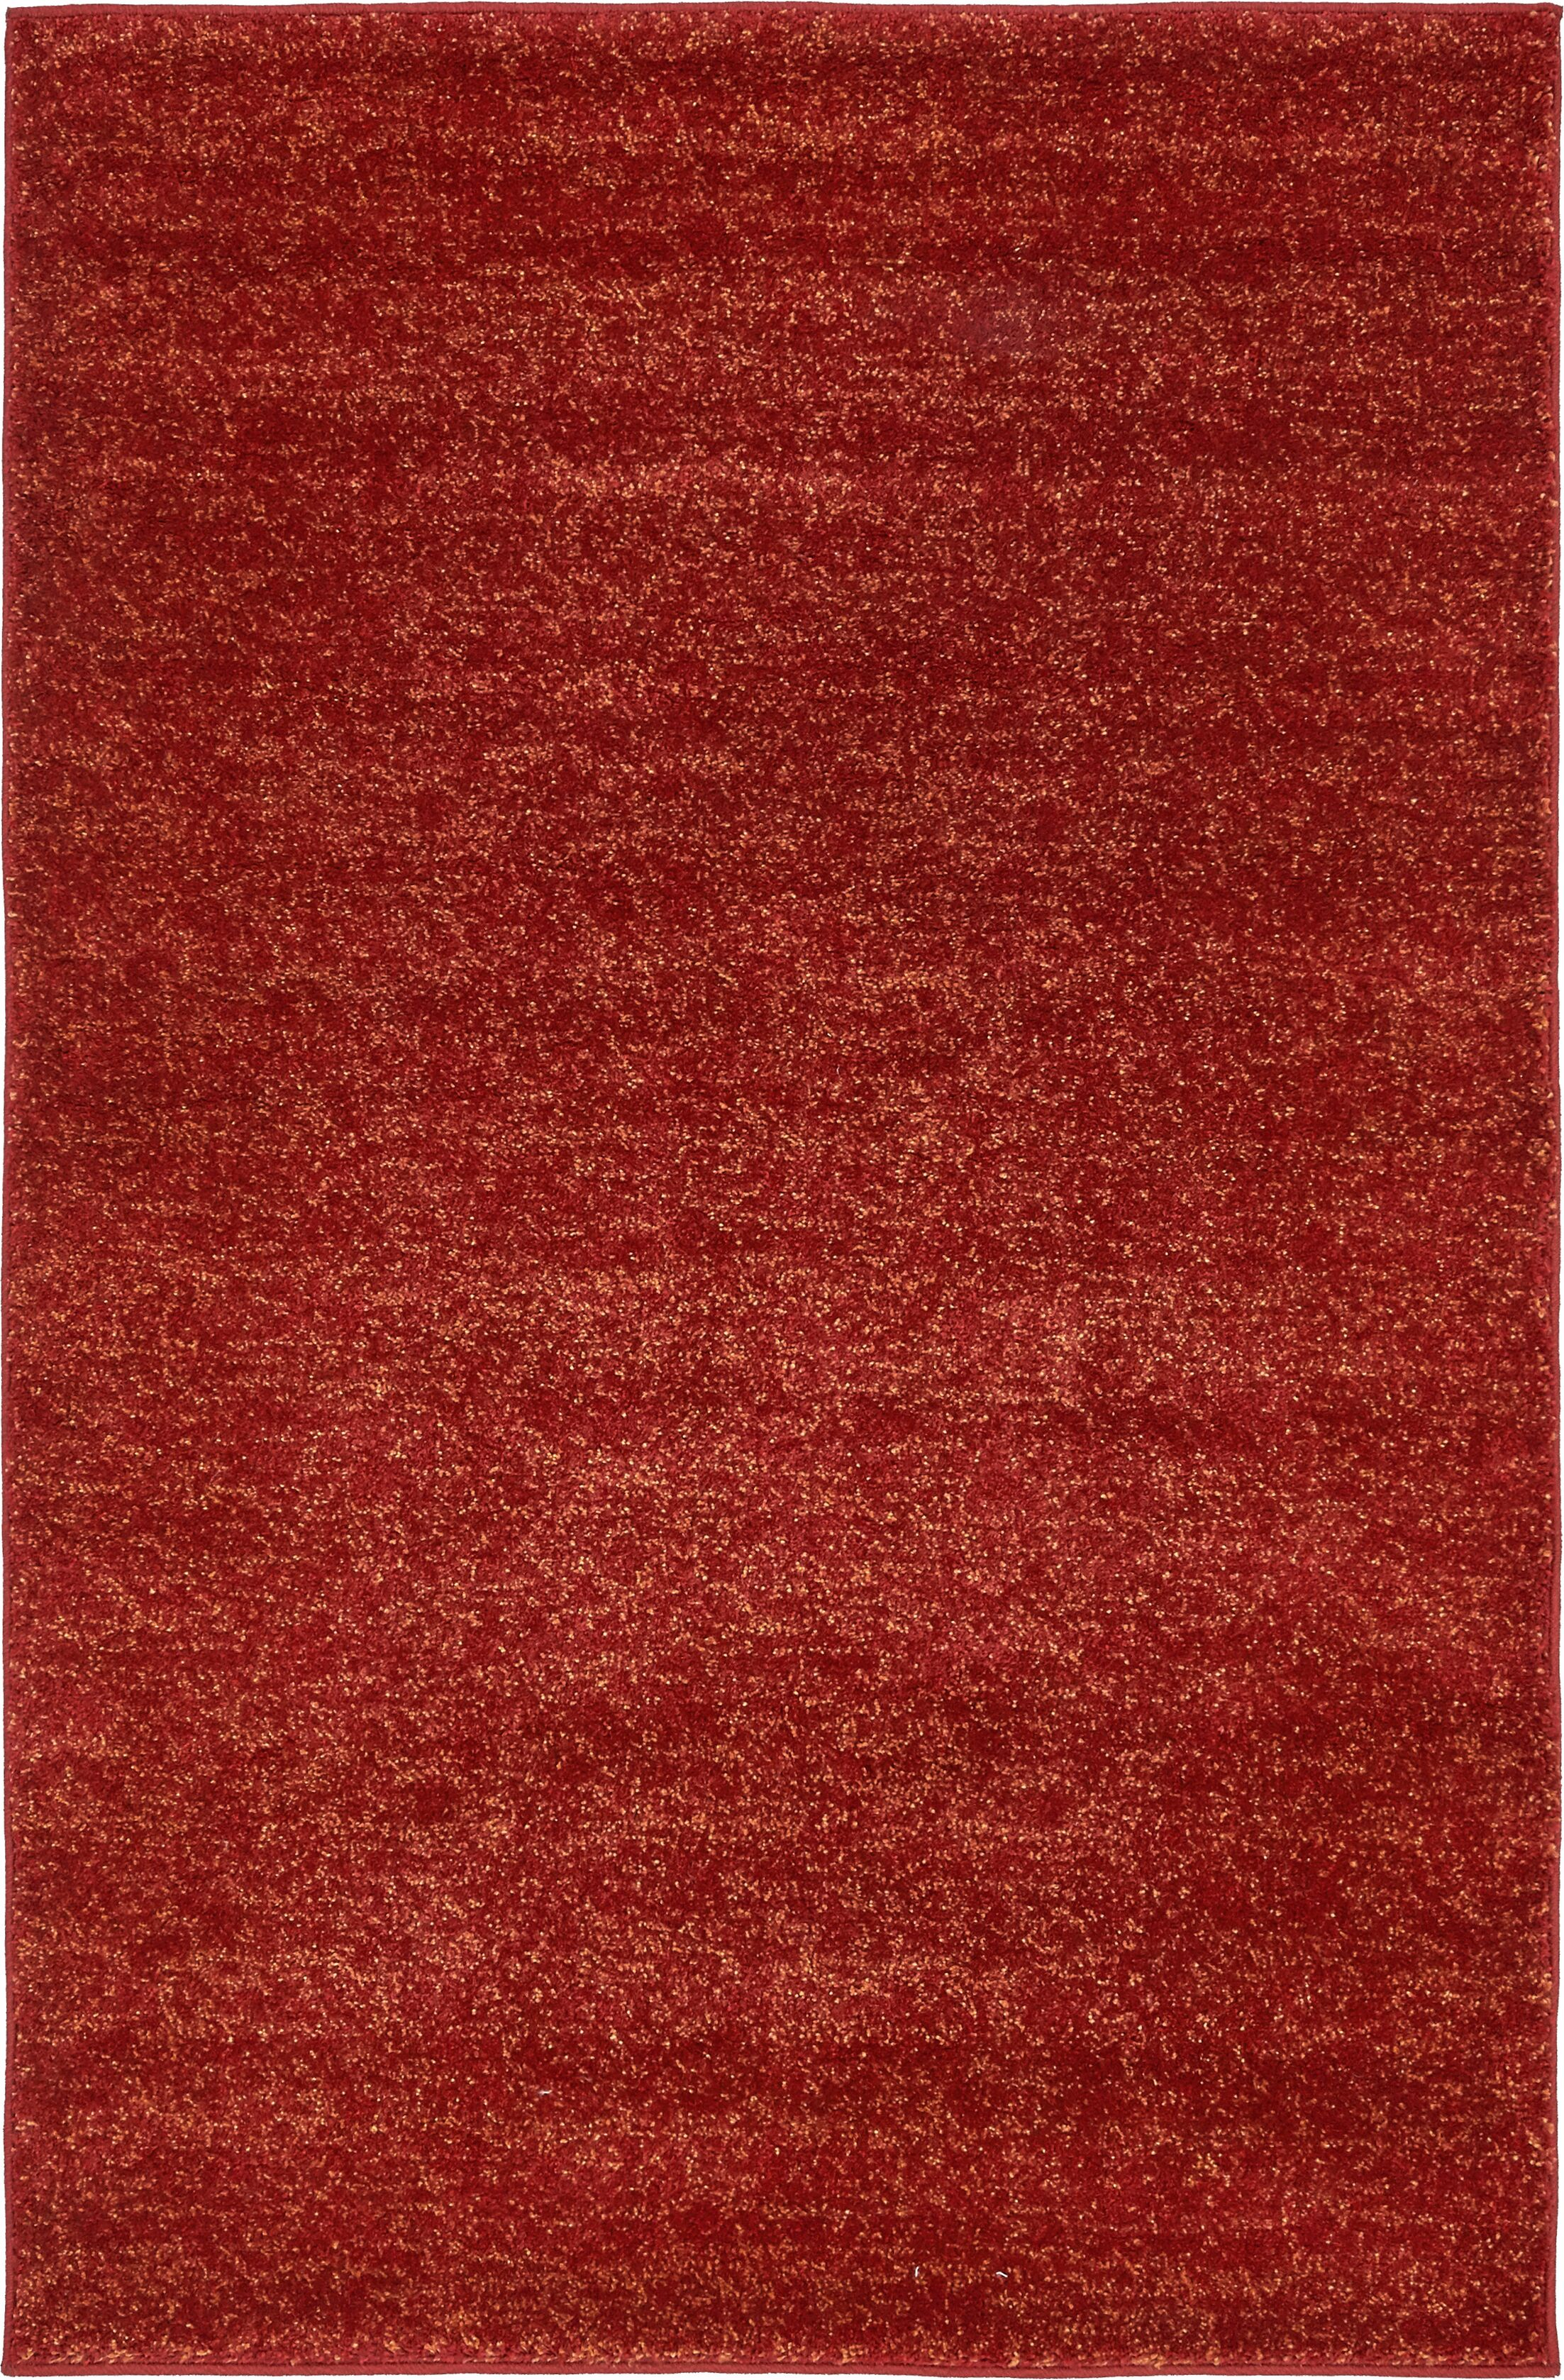 St Philips Marsh Red Area Rug Rug Size: Rectangle 4' x 6'